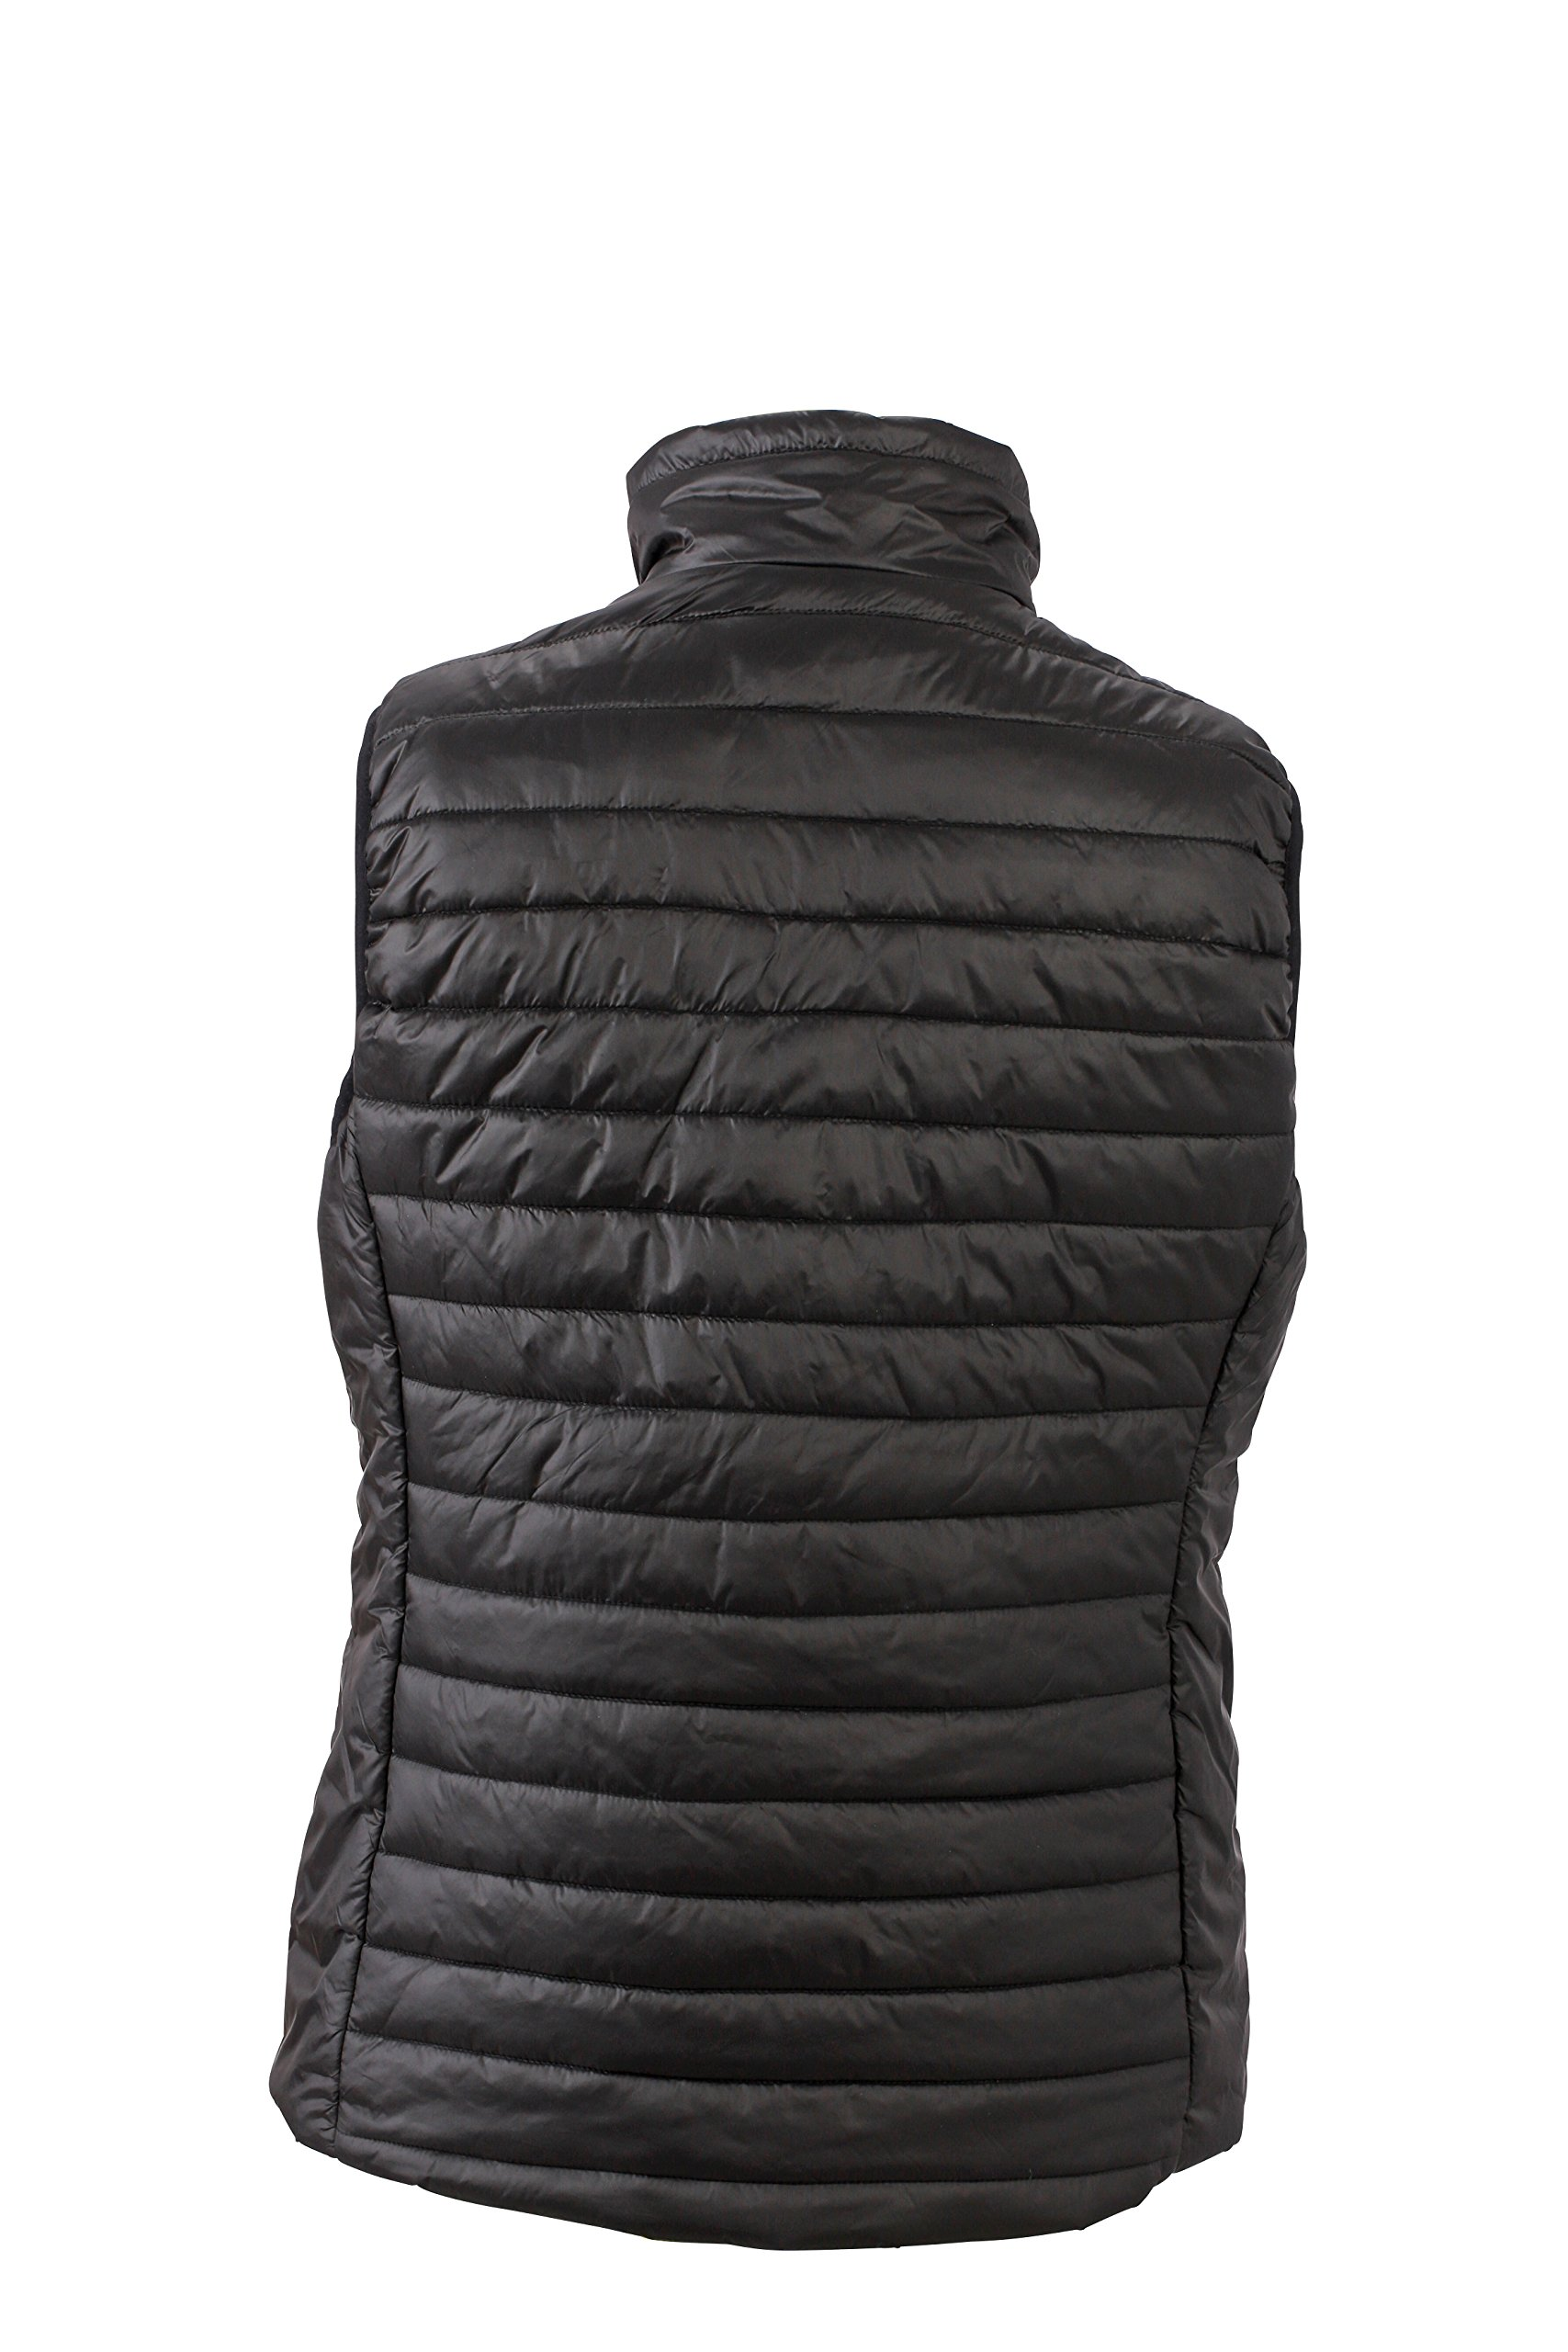 81Dh0e5f%2BkL - James & Nicholson Women's Lightweight Vest Outdoor